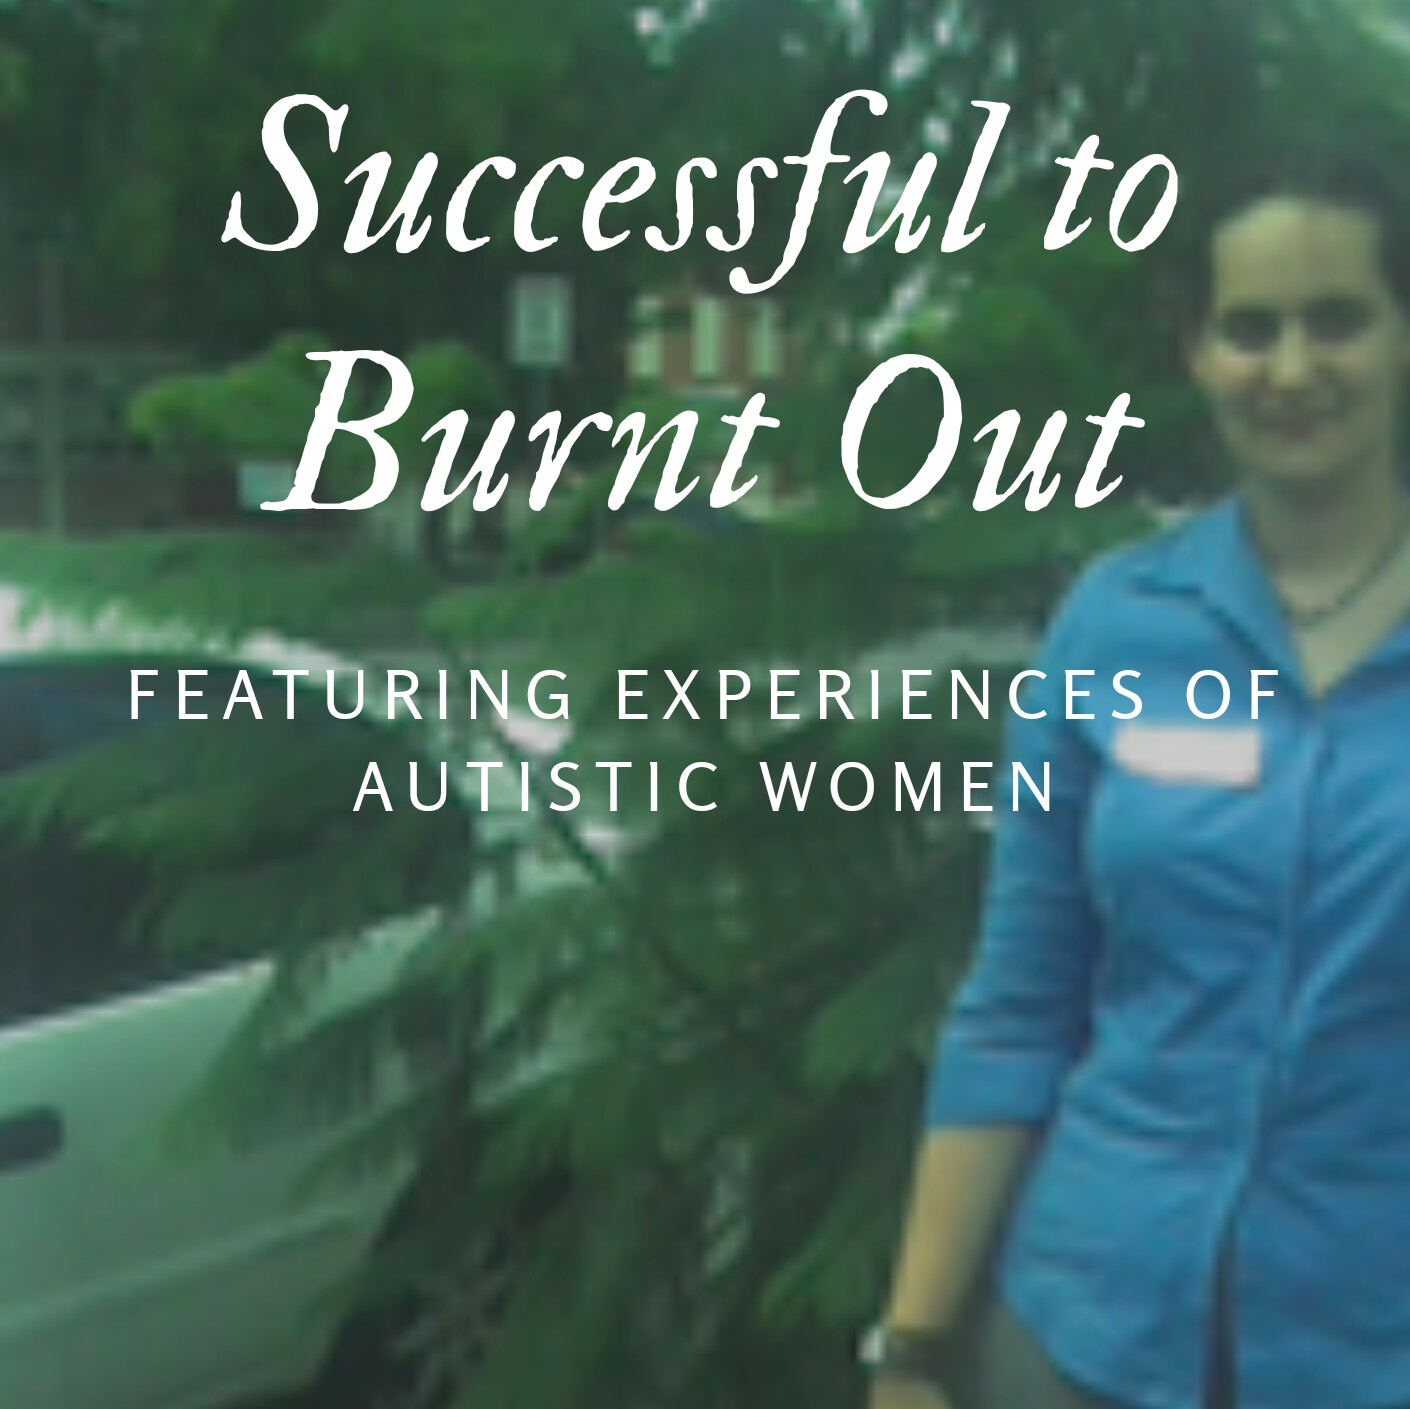 Chapter 3: Autistic Burn Out (Successful to Burnt Out)